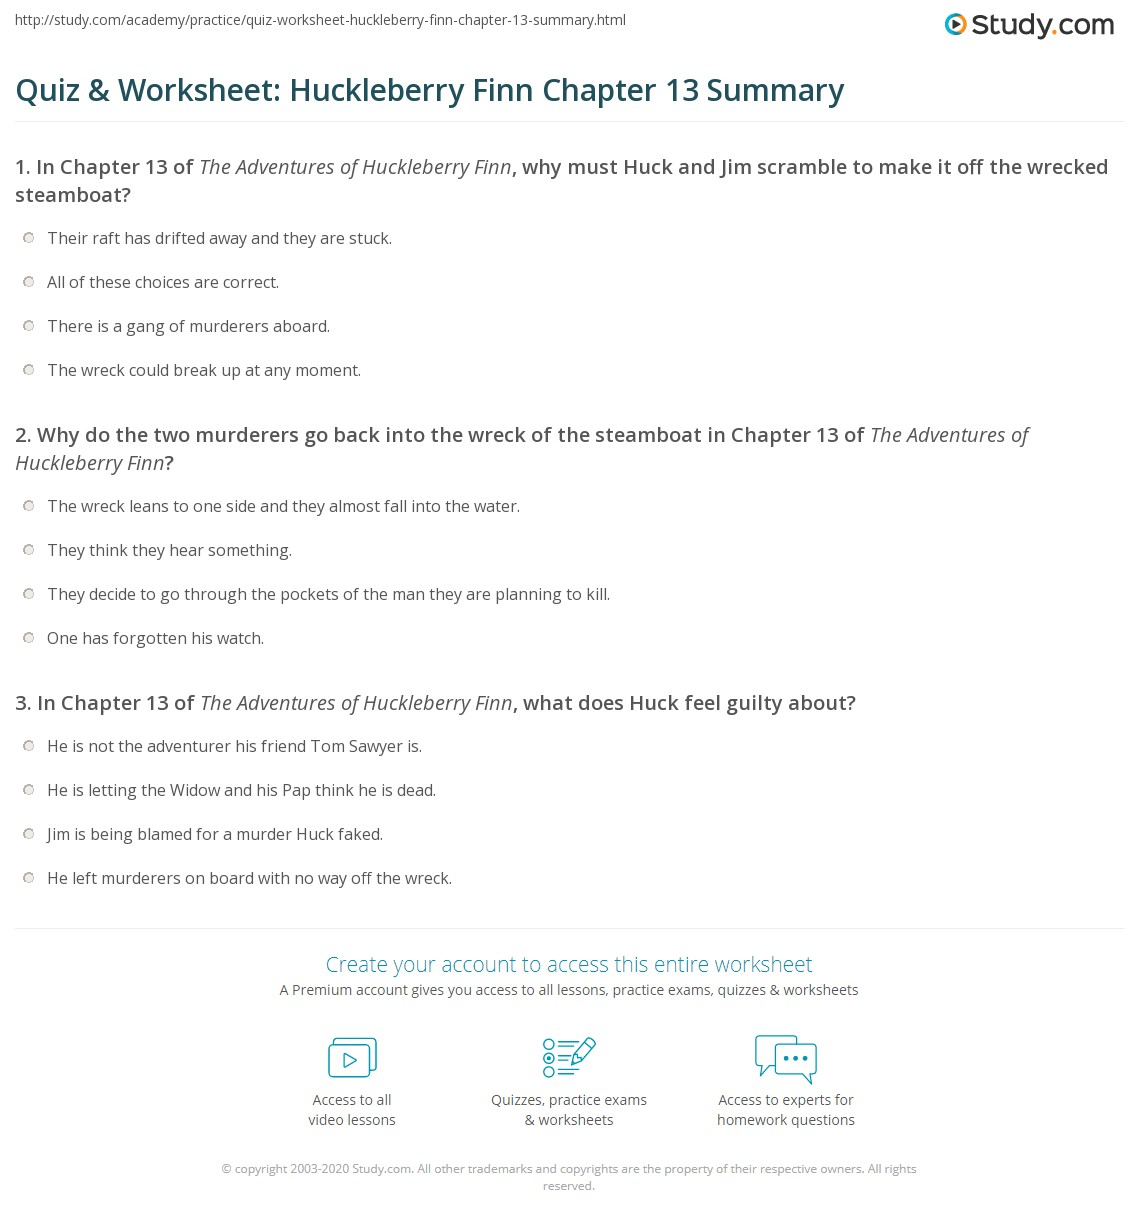 huckleberry finn essay topics quiz worksheet huckleberry finn  quiz worksheet huckleberry finn chapter 13 summary com print the adventures of huckleberry finn chapter 13